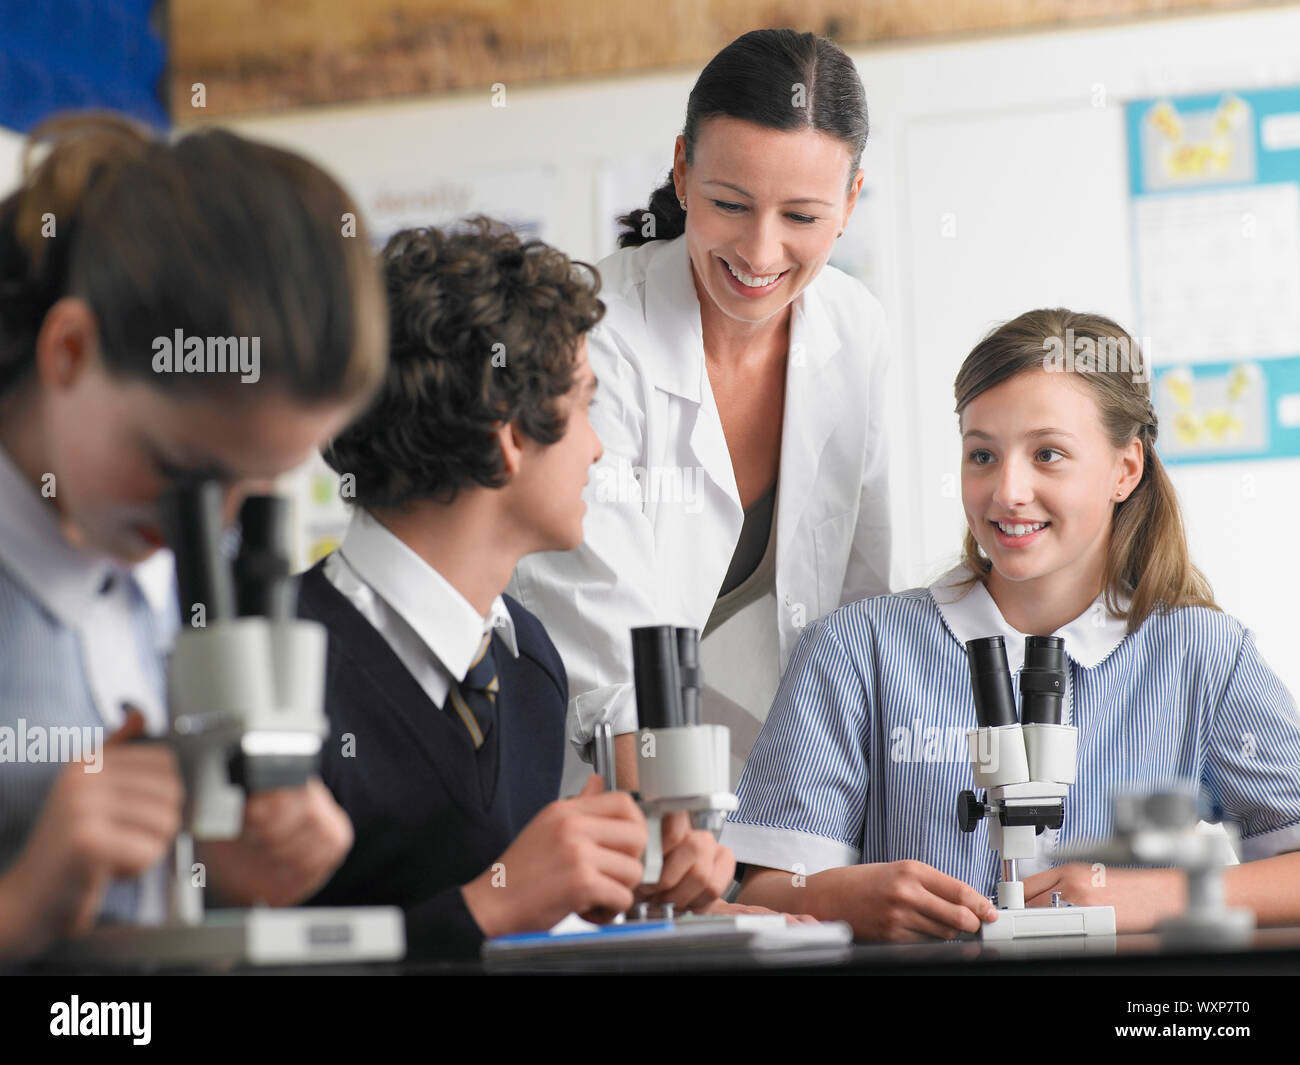 High School Students With Teacher in Chemistry Class Stock Photo